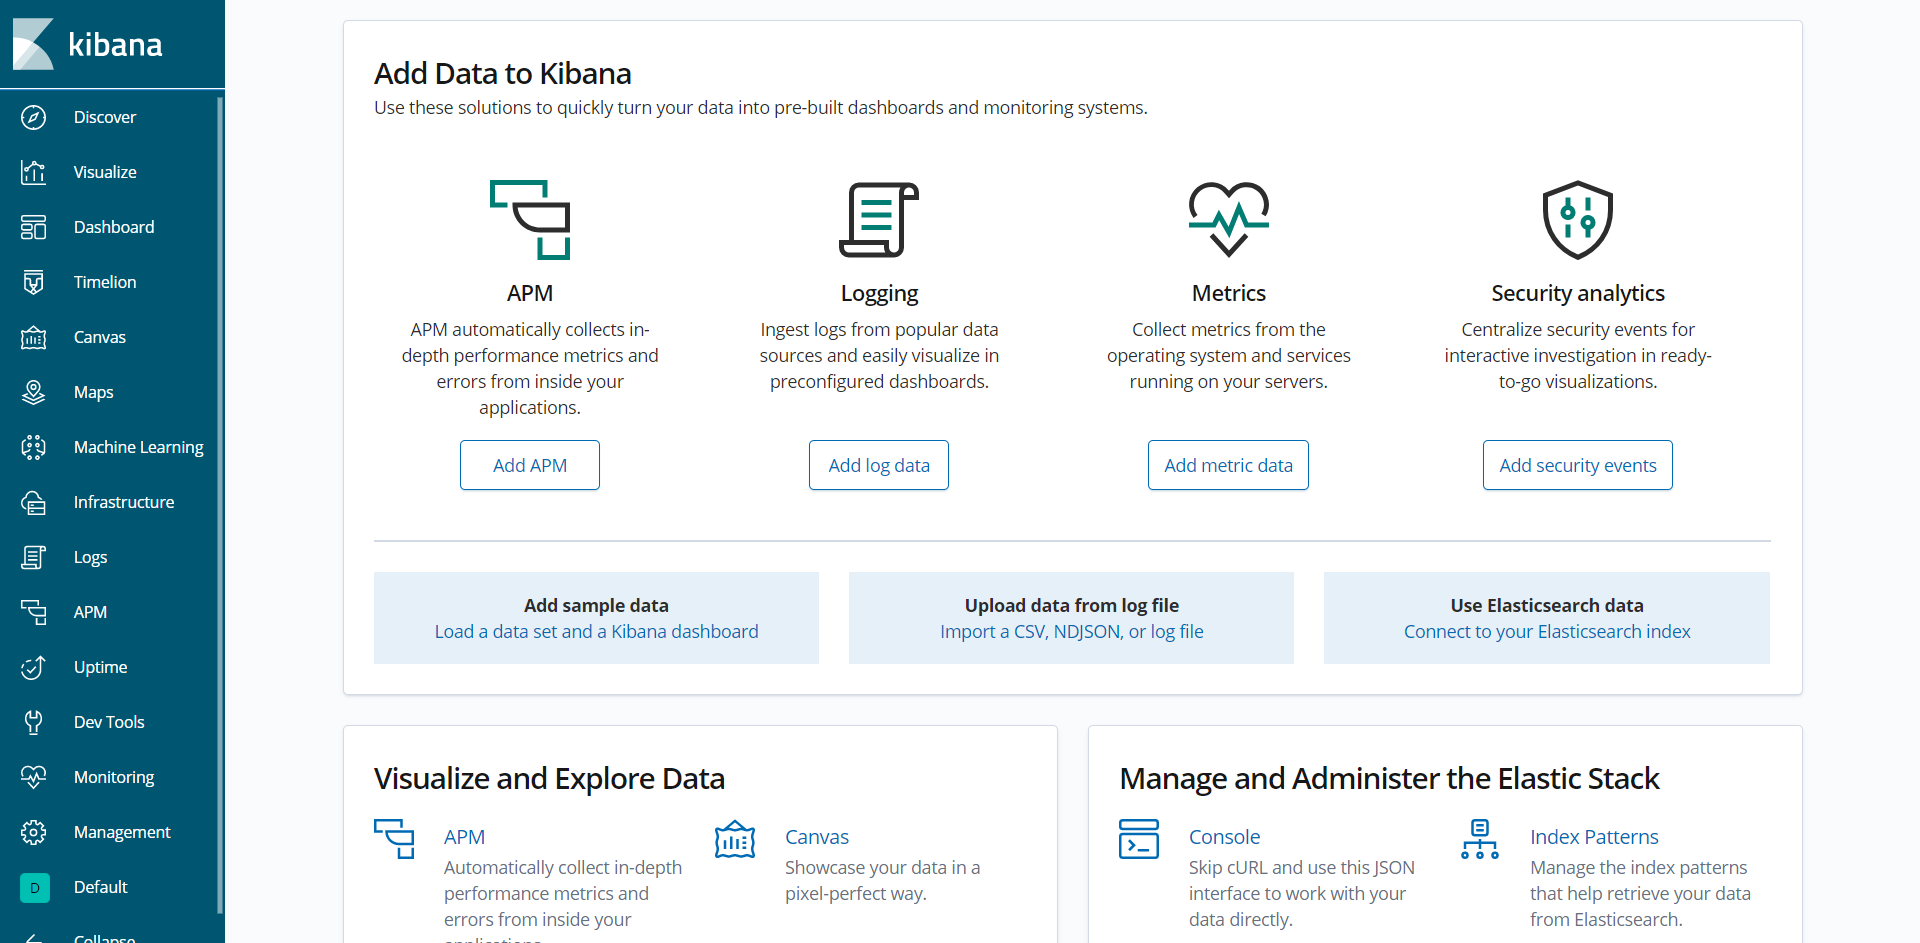 Kibana - Default Welcome Page